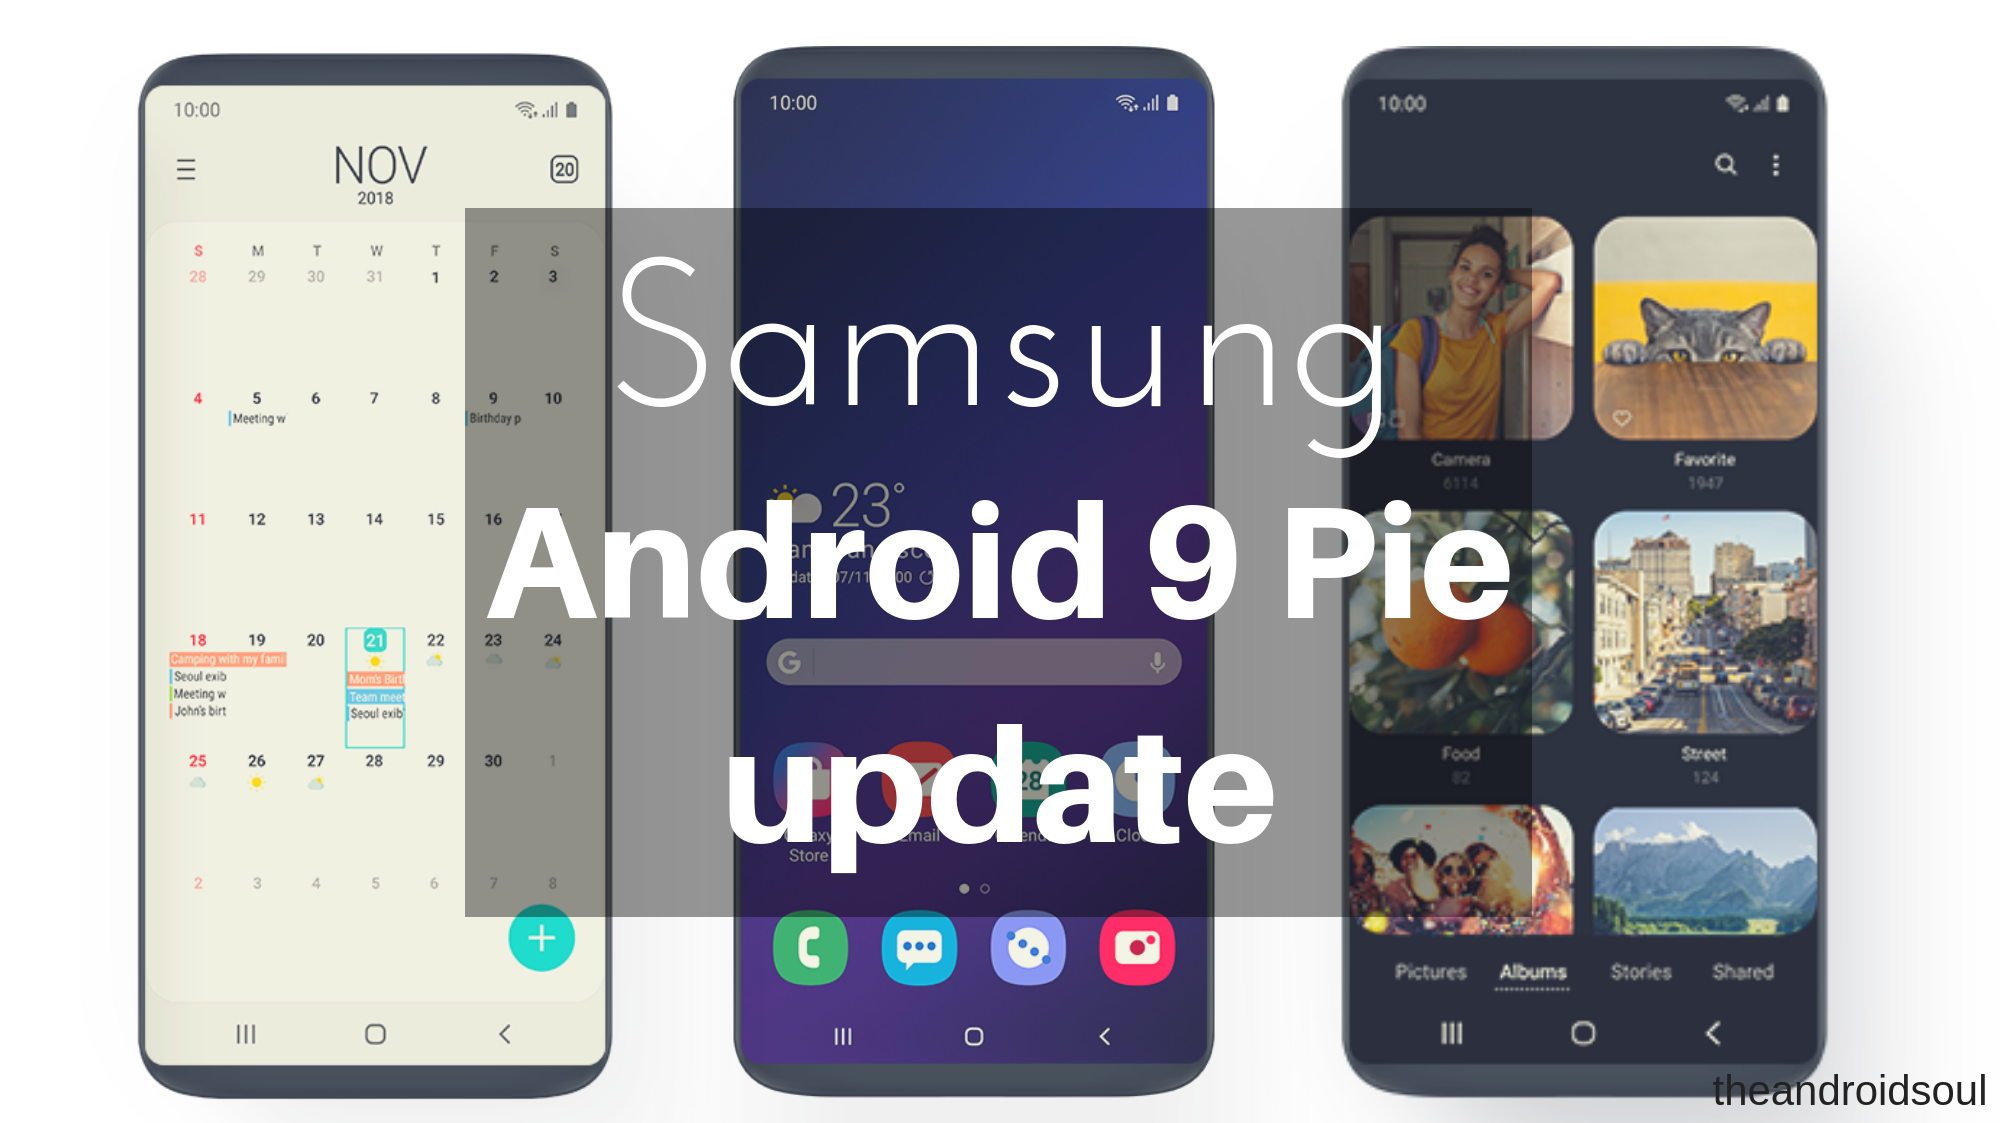 Samsung Android Pie release date revealed for Galaxy S8, S9, Note 8